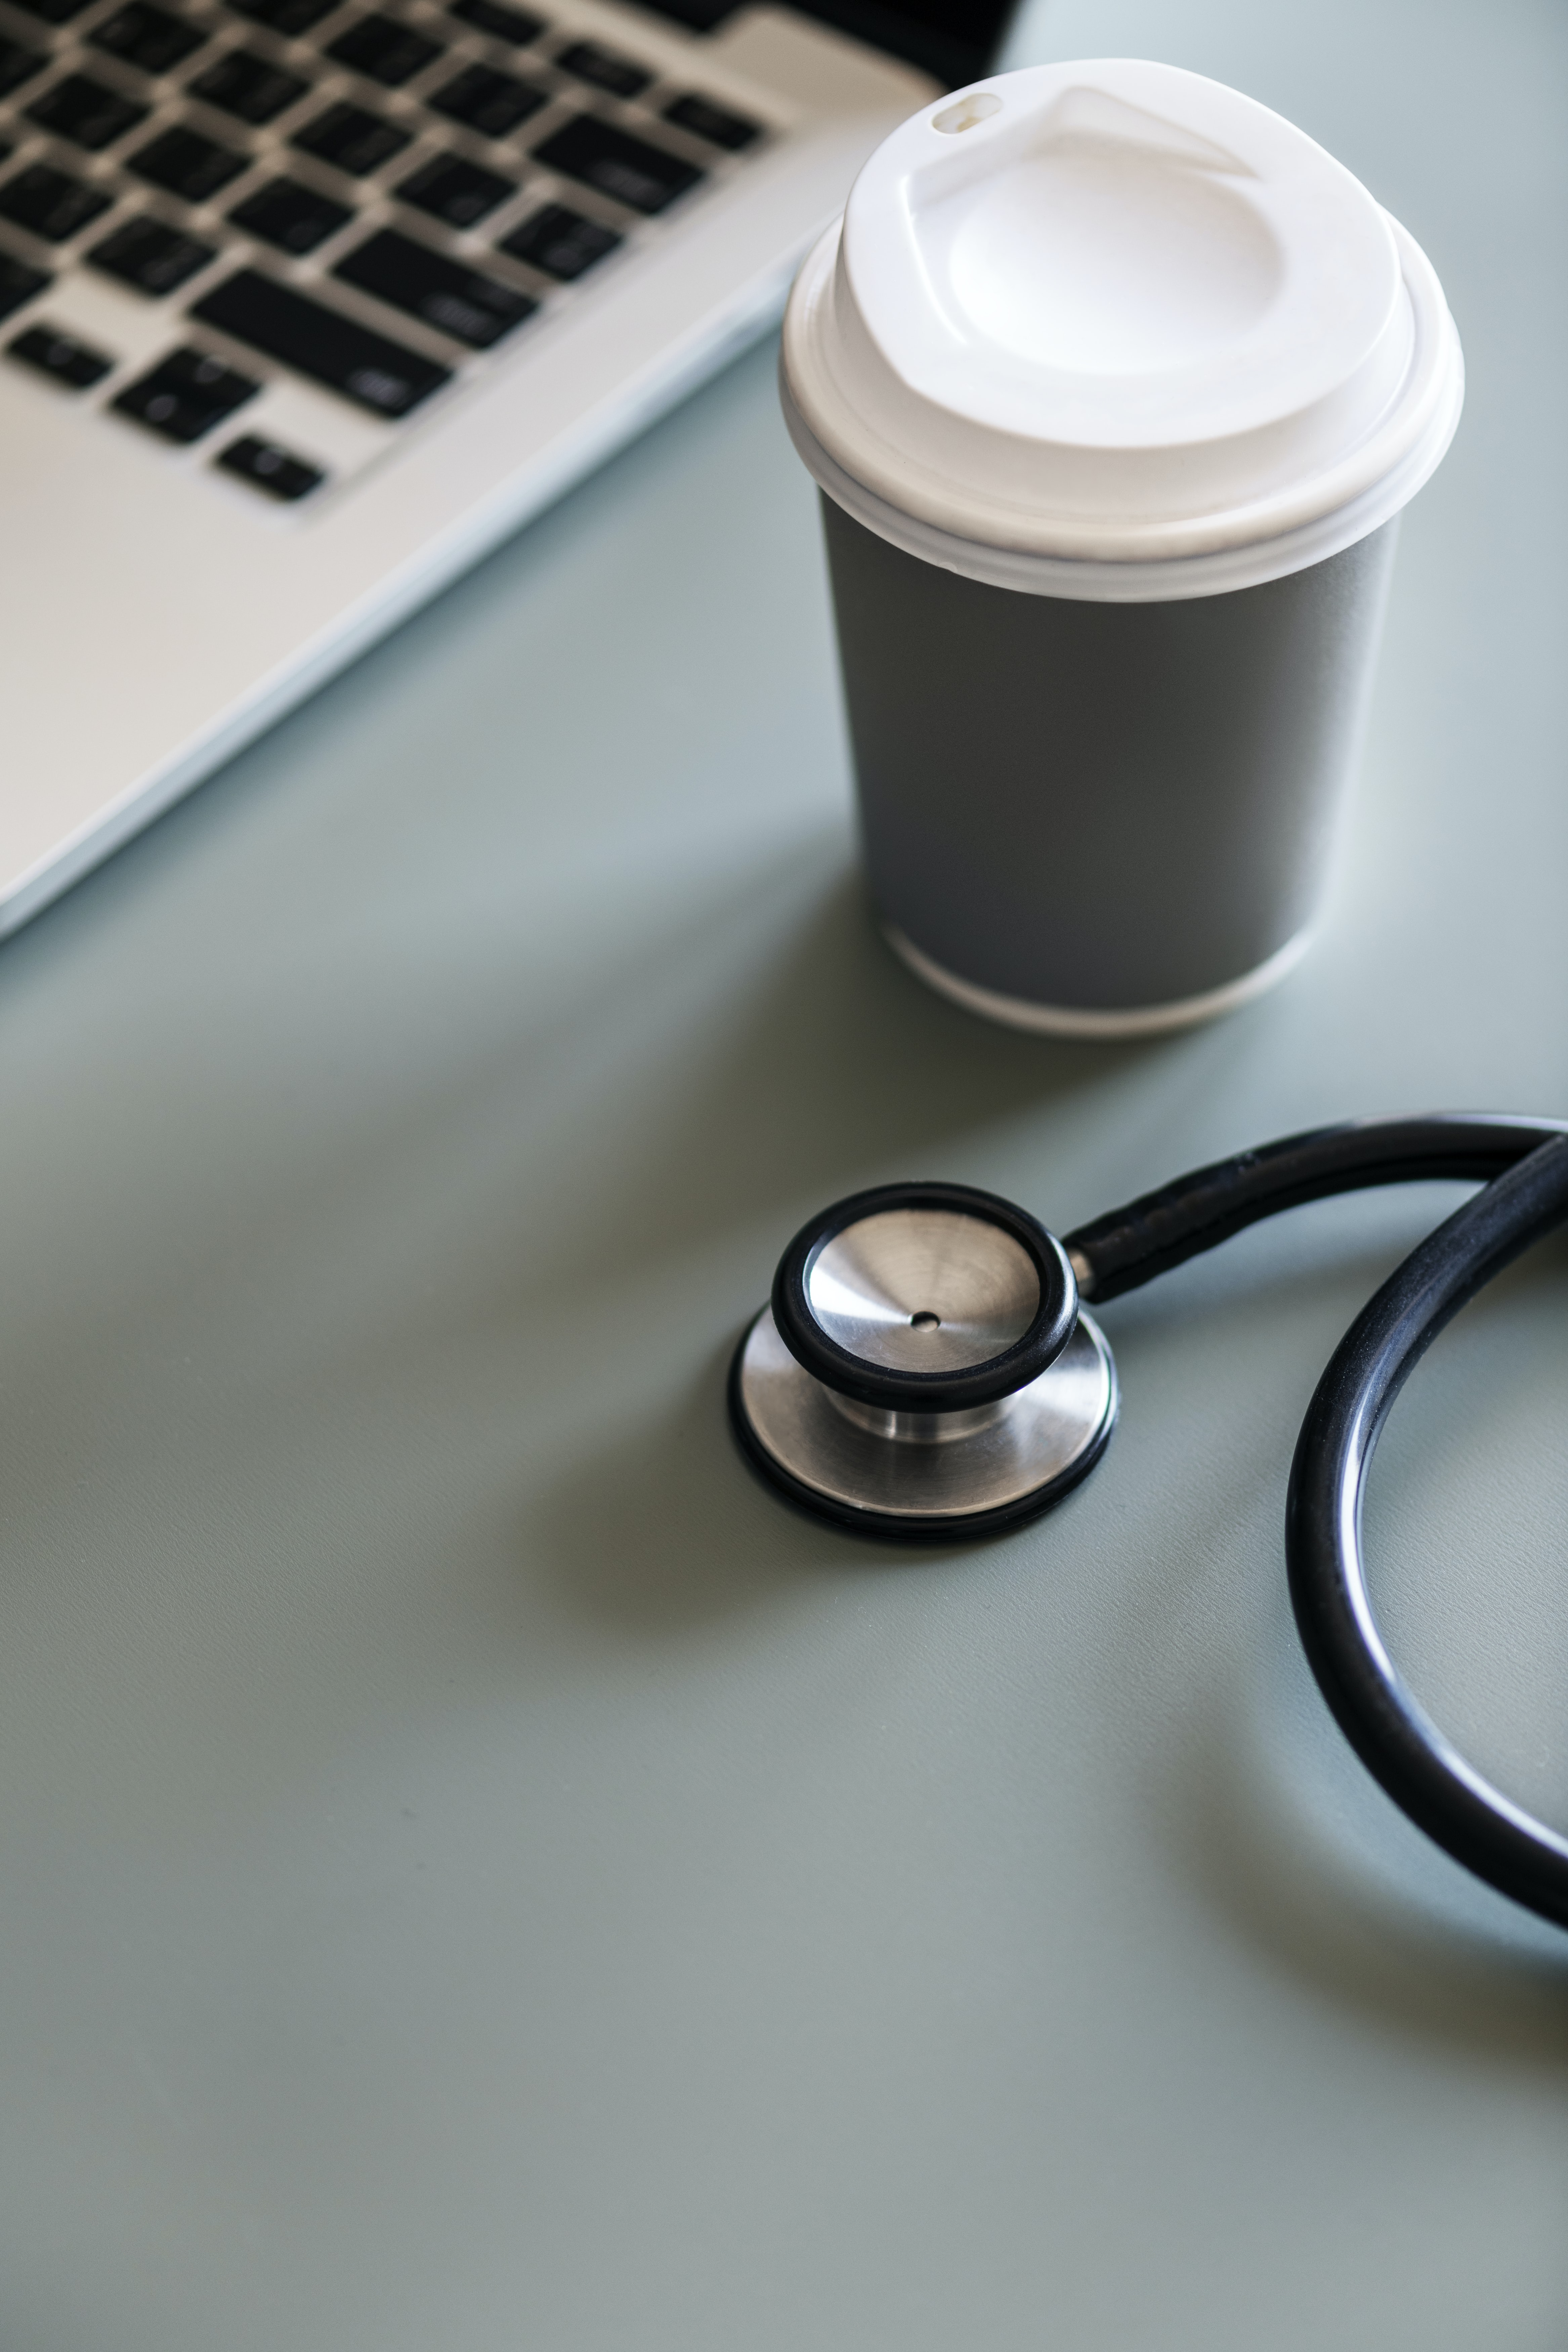 stethoscope beside plastic cup and laptop computer